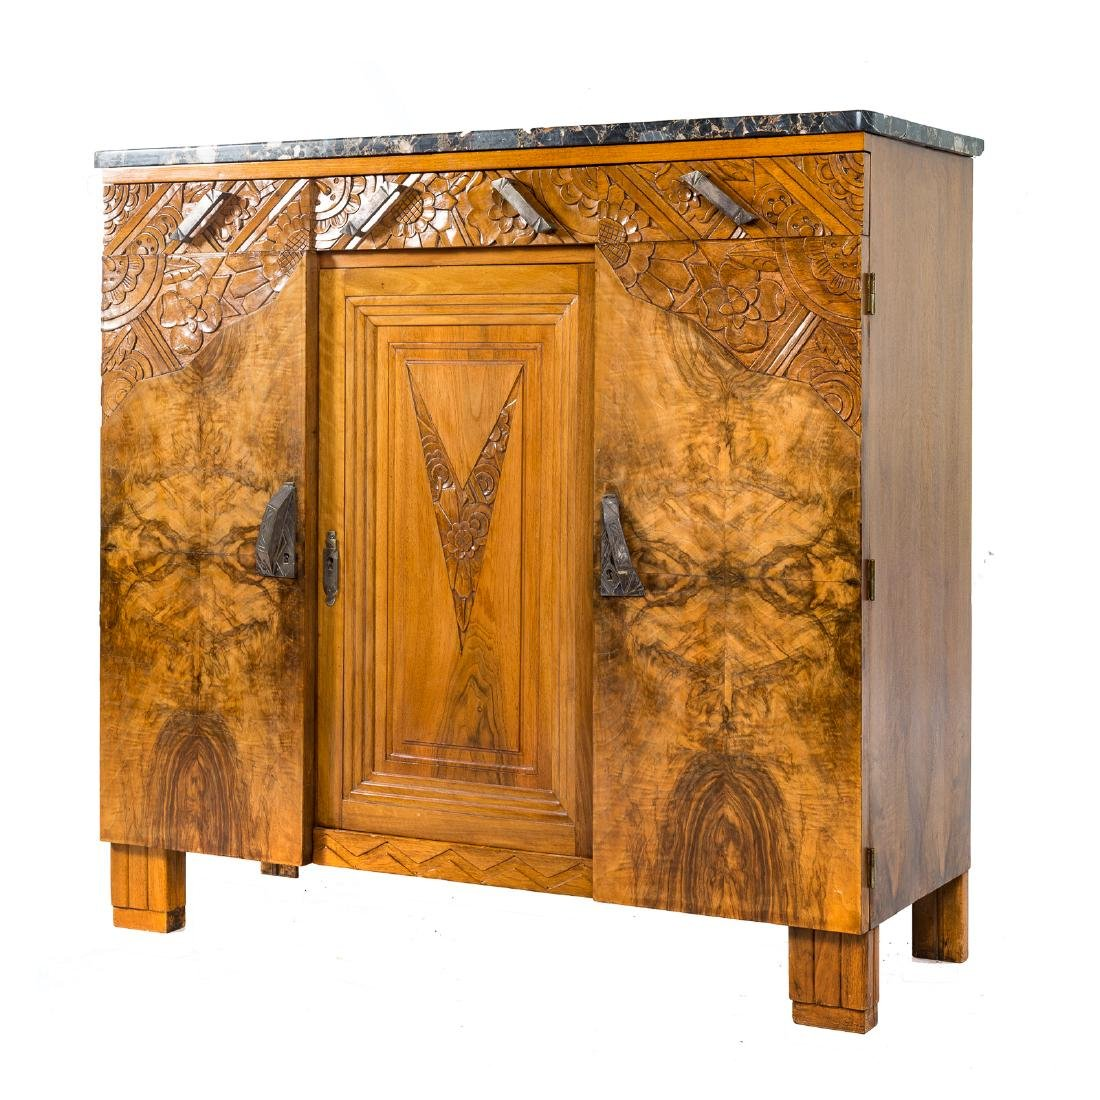 French Art Deco palissandre cabinet - 2